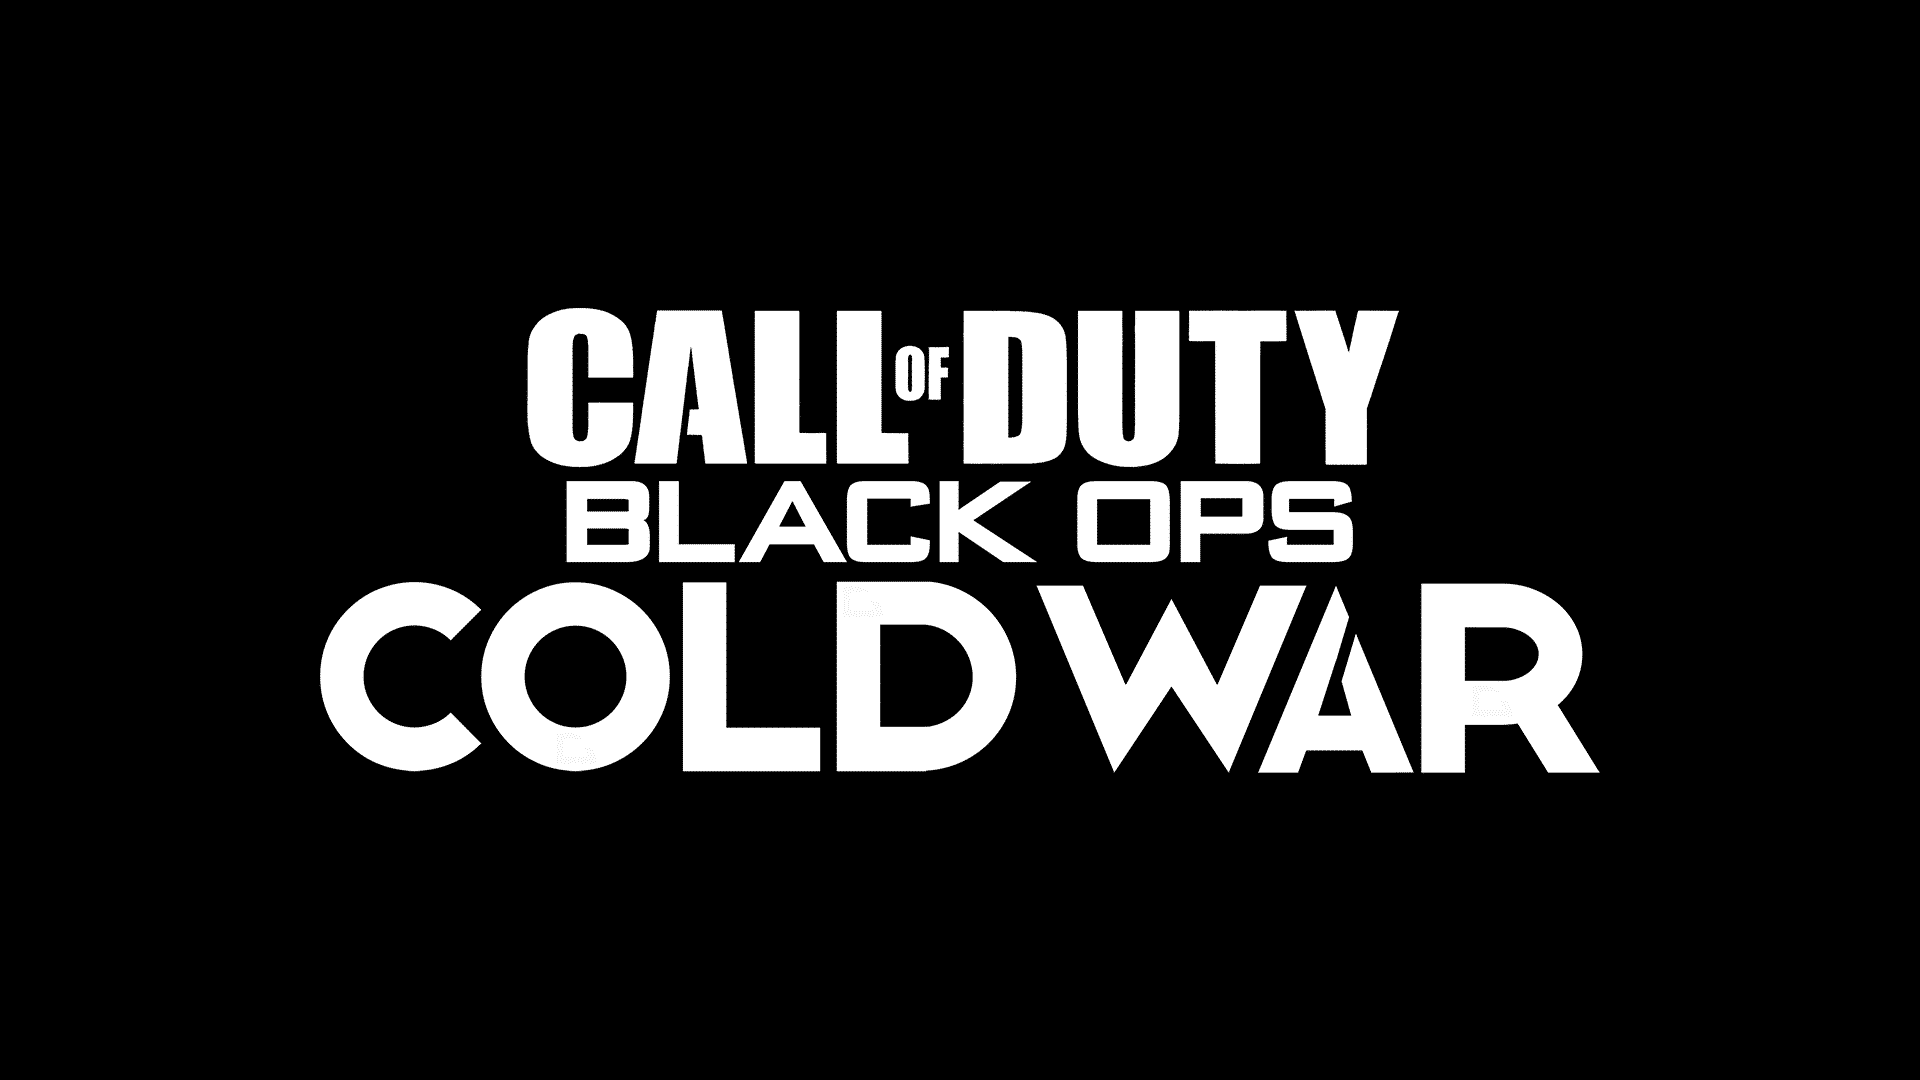 Call Of Duty Black Ops Cold War Teaser Full Reveal In Warzone Aug 26